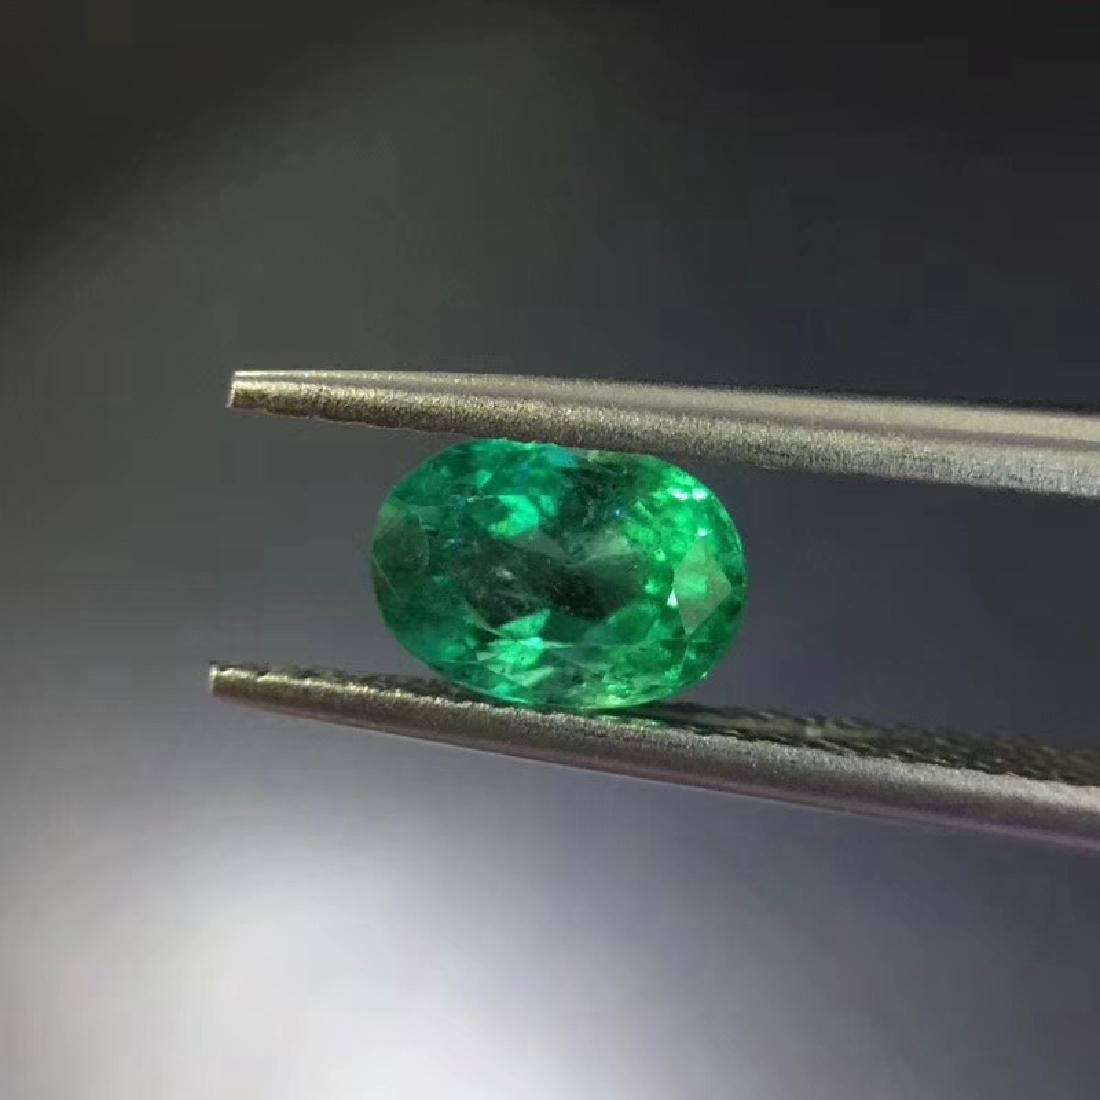 1.06 ct Emerald 5.0*6.9*4.2 mm Oval Cut